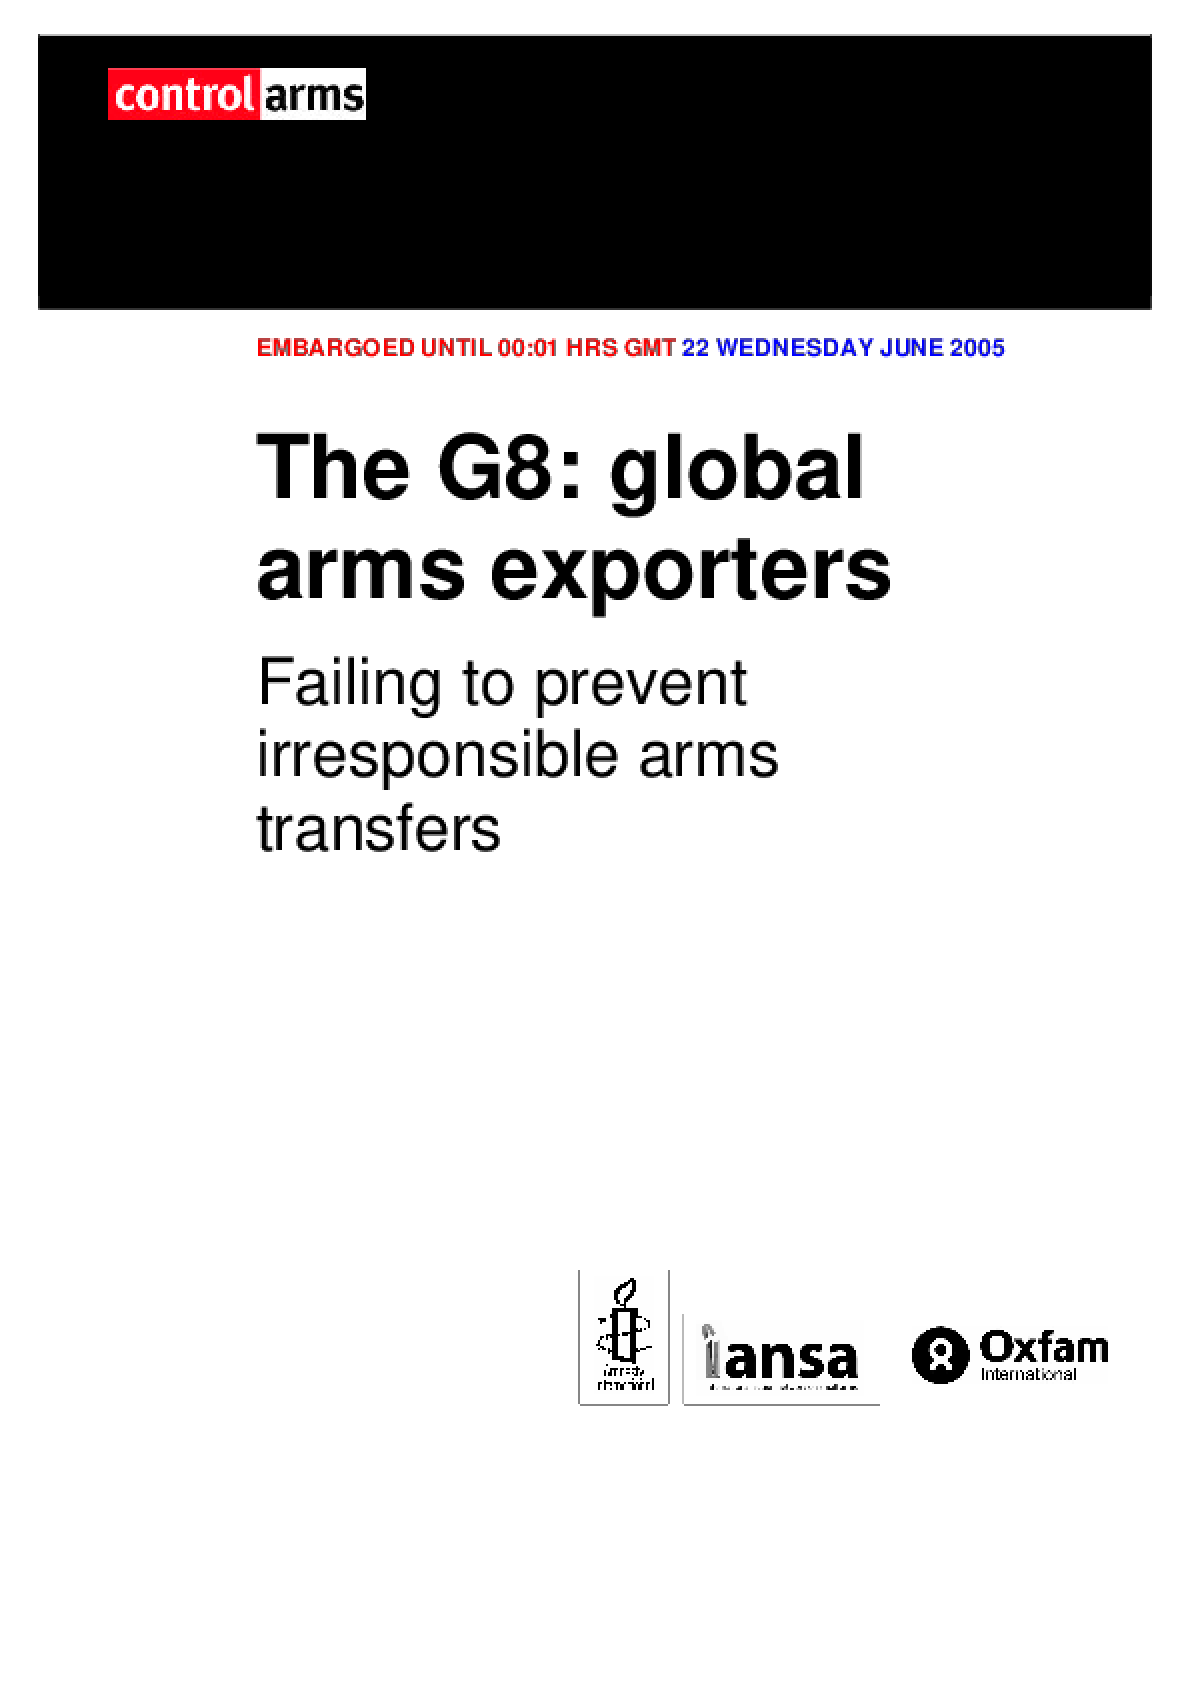 The G8: Global arms exporters: Failing to prevent irresponsible arms transfers